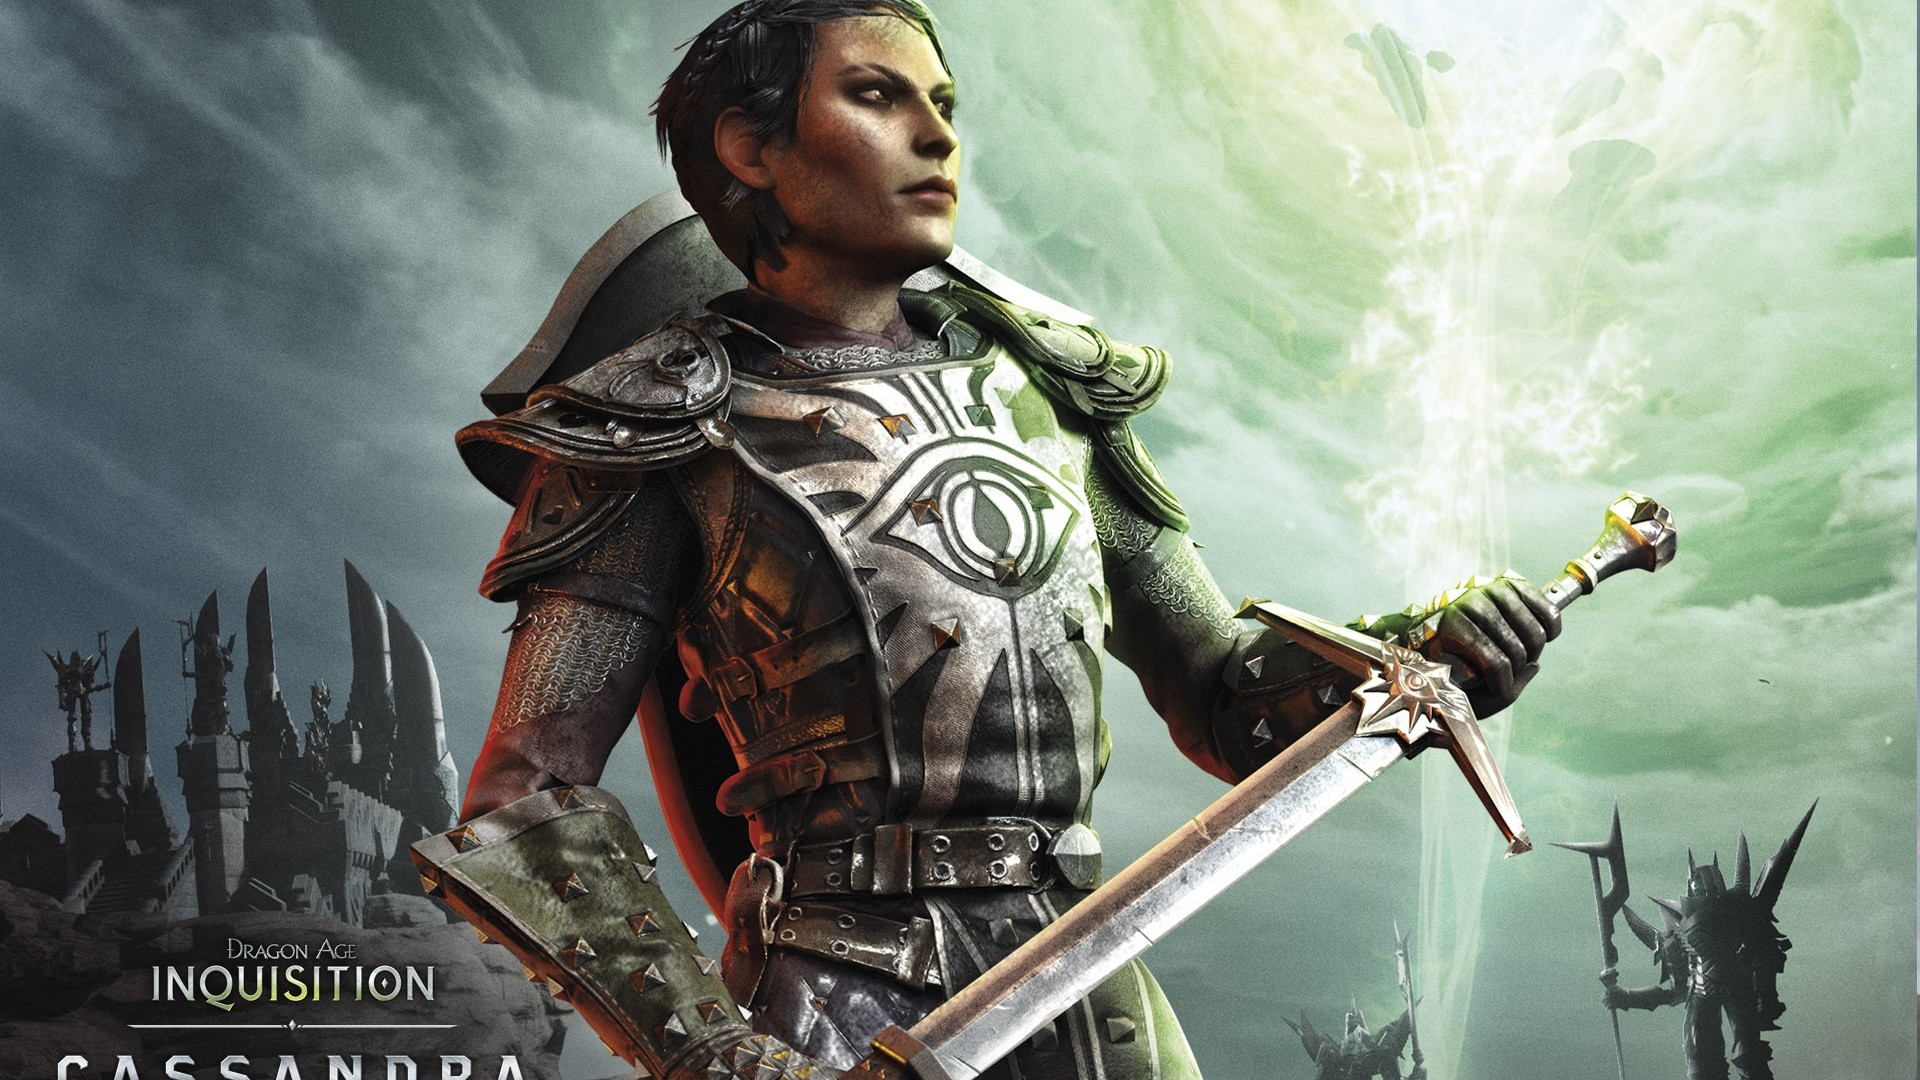 13 HD Dragon Age Inquisition Desktop Wallpapers For Free Download